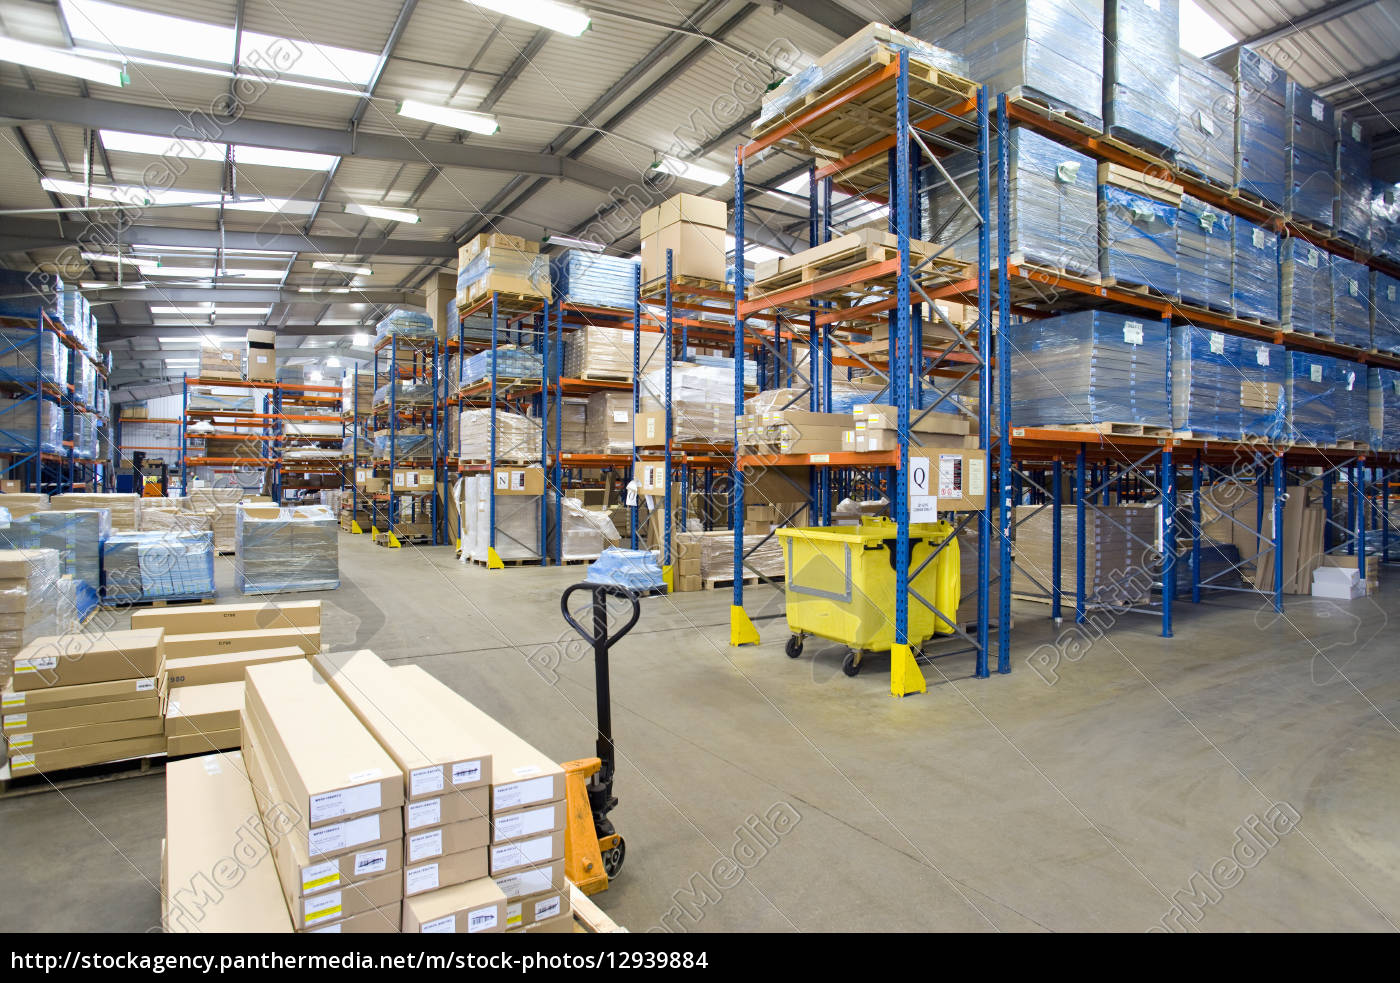 cardboard, boxes, and, pallets, in, warehouse - 12939884